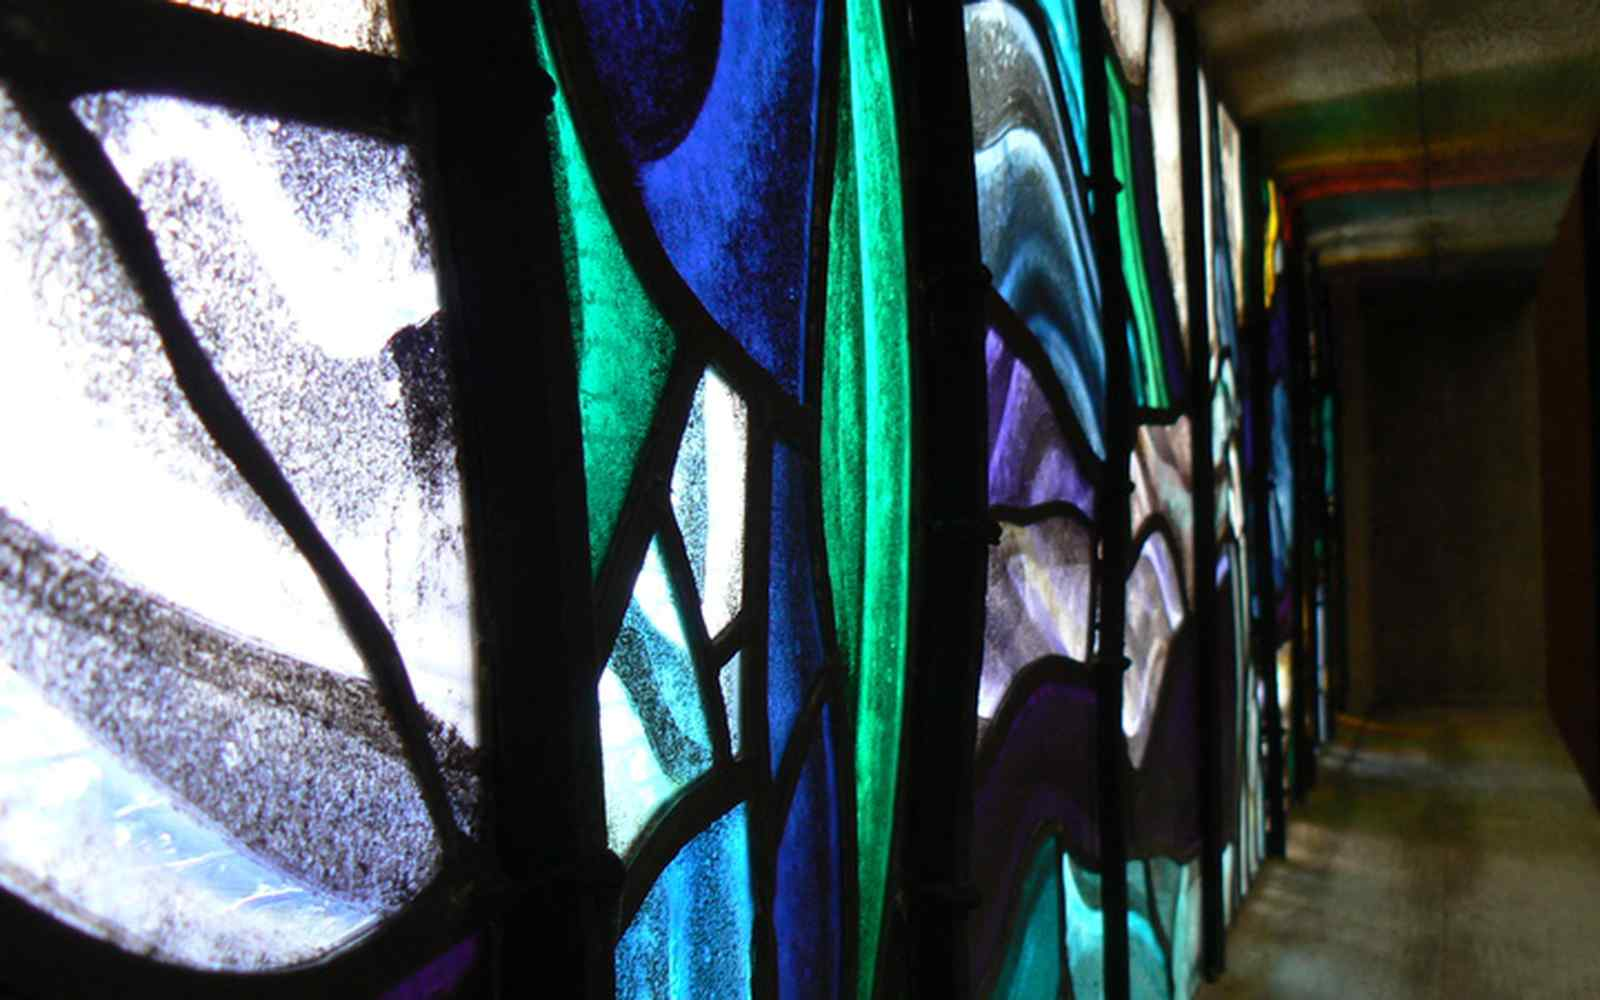 An abstract close up of a colourful stained glass window